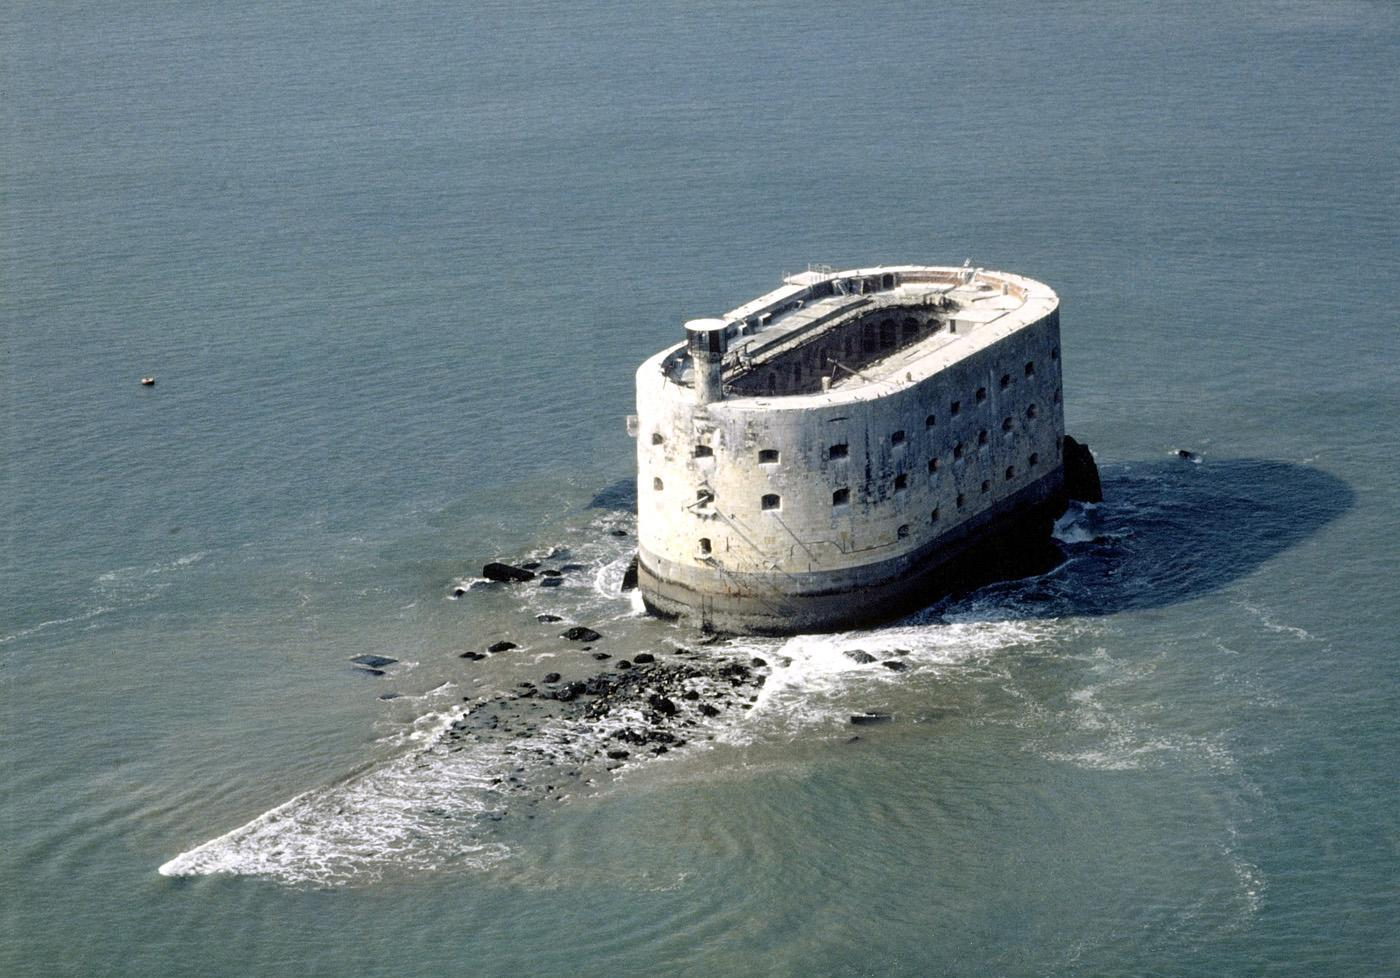 Arras france tourism guide 187 more pictures of the fort boyard